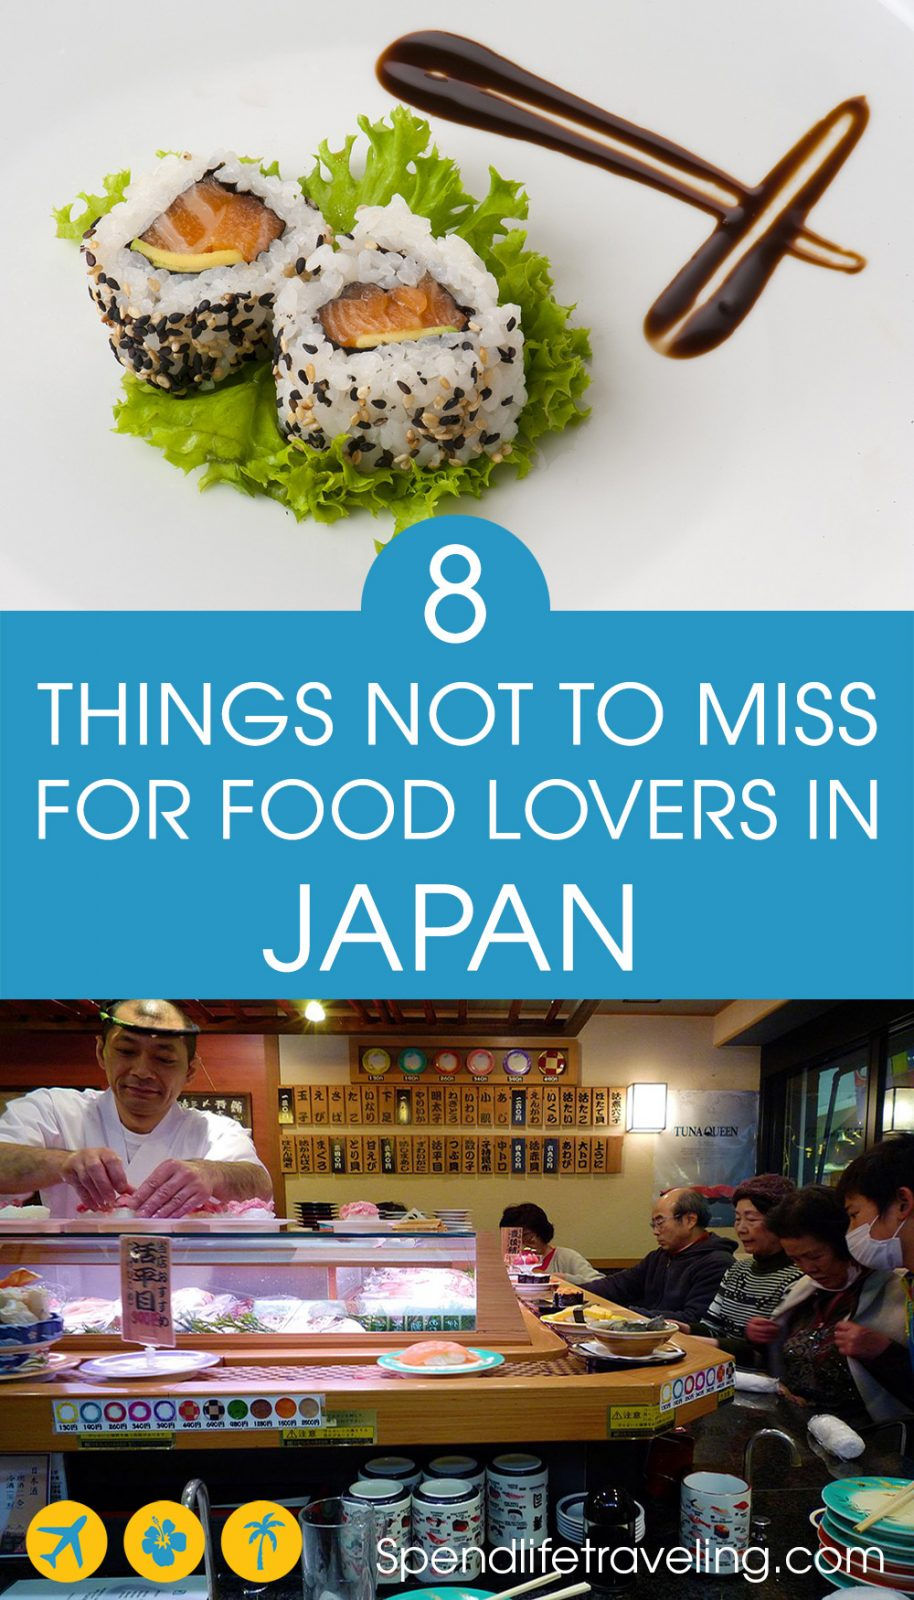 Tips for what to eat in Japan.